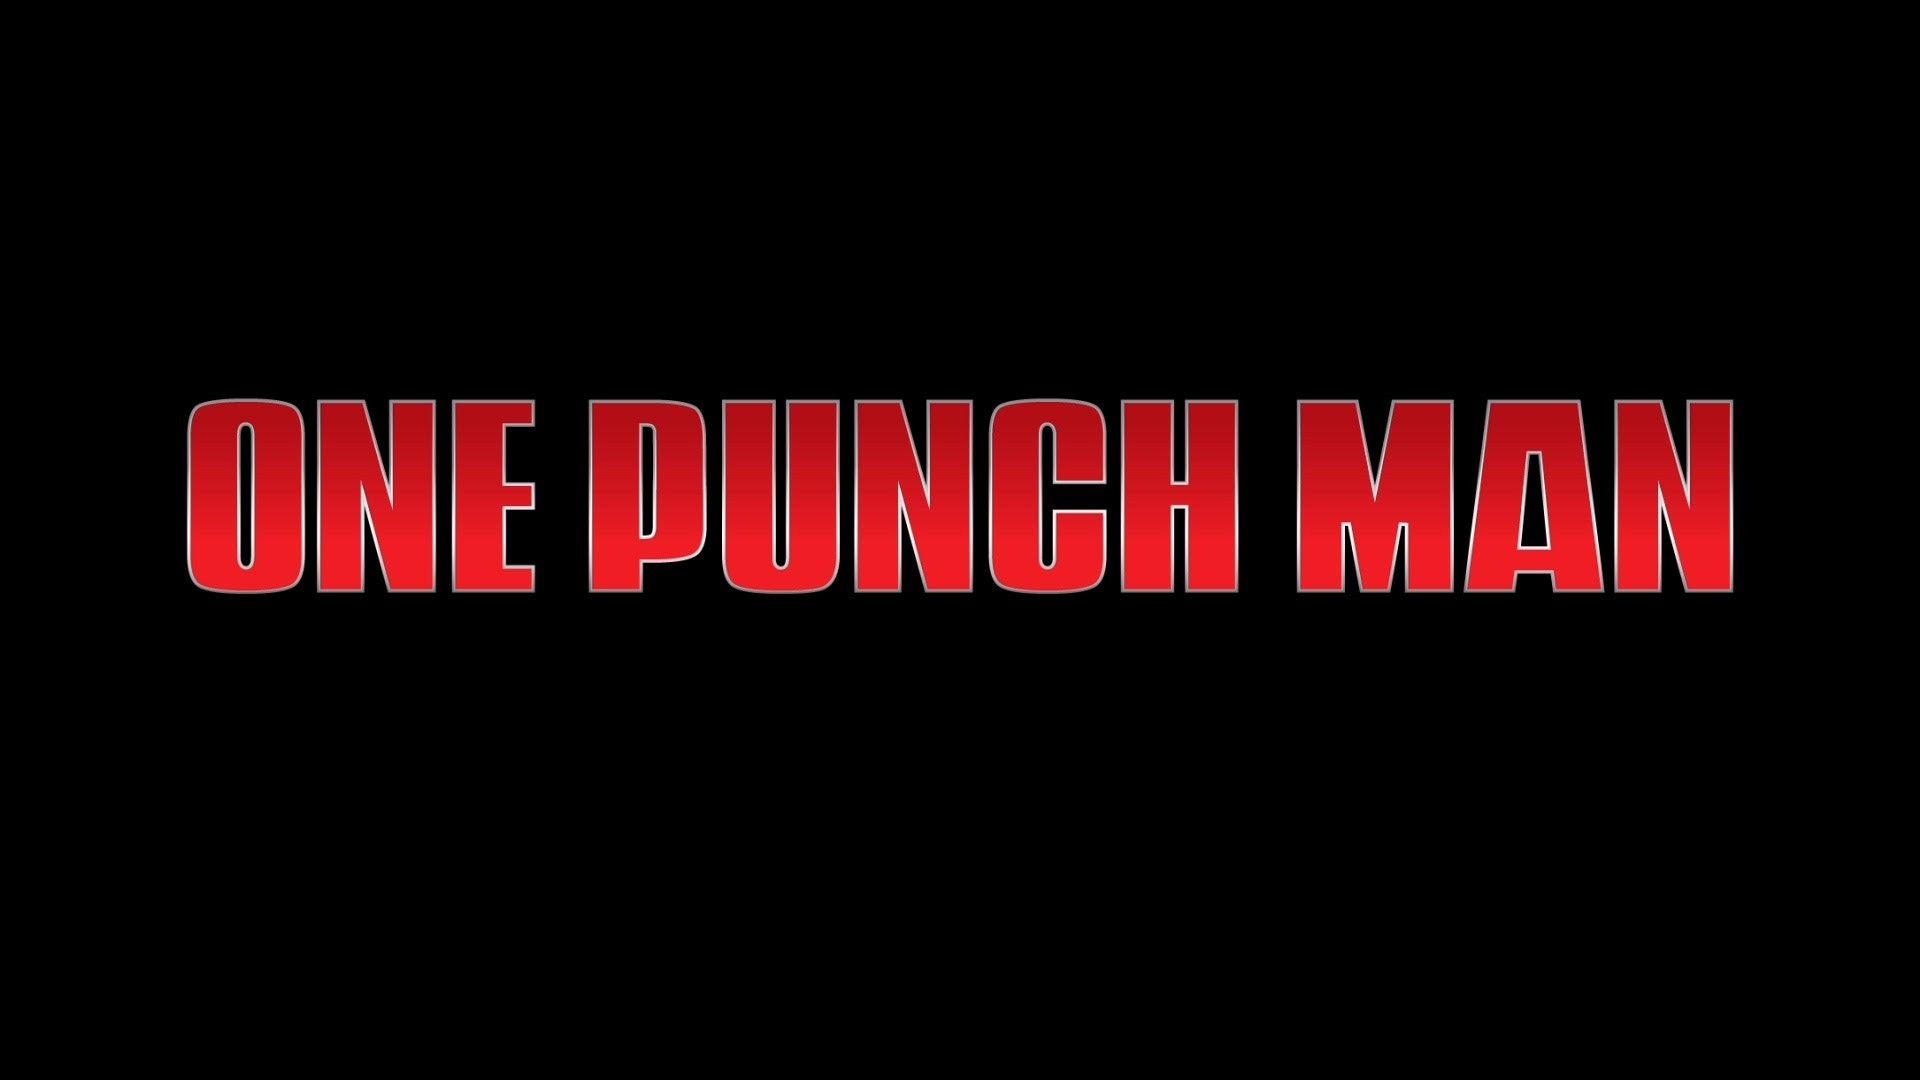 One punch man wallpaper 1920x1080